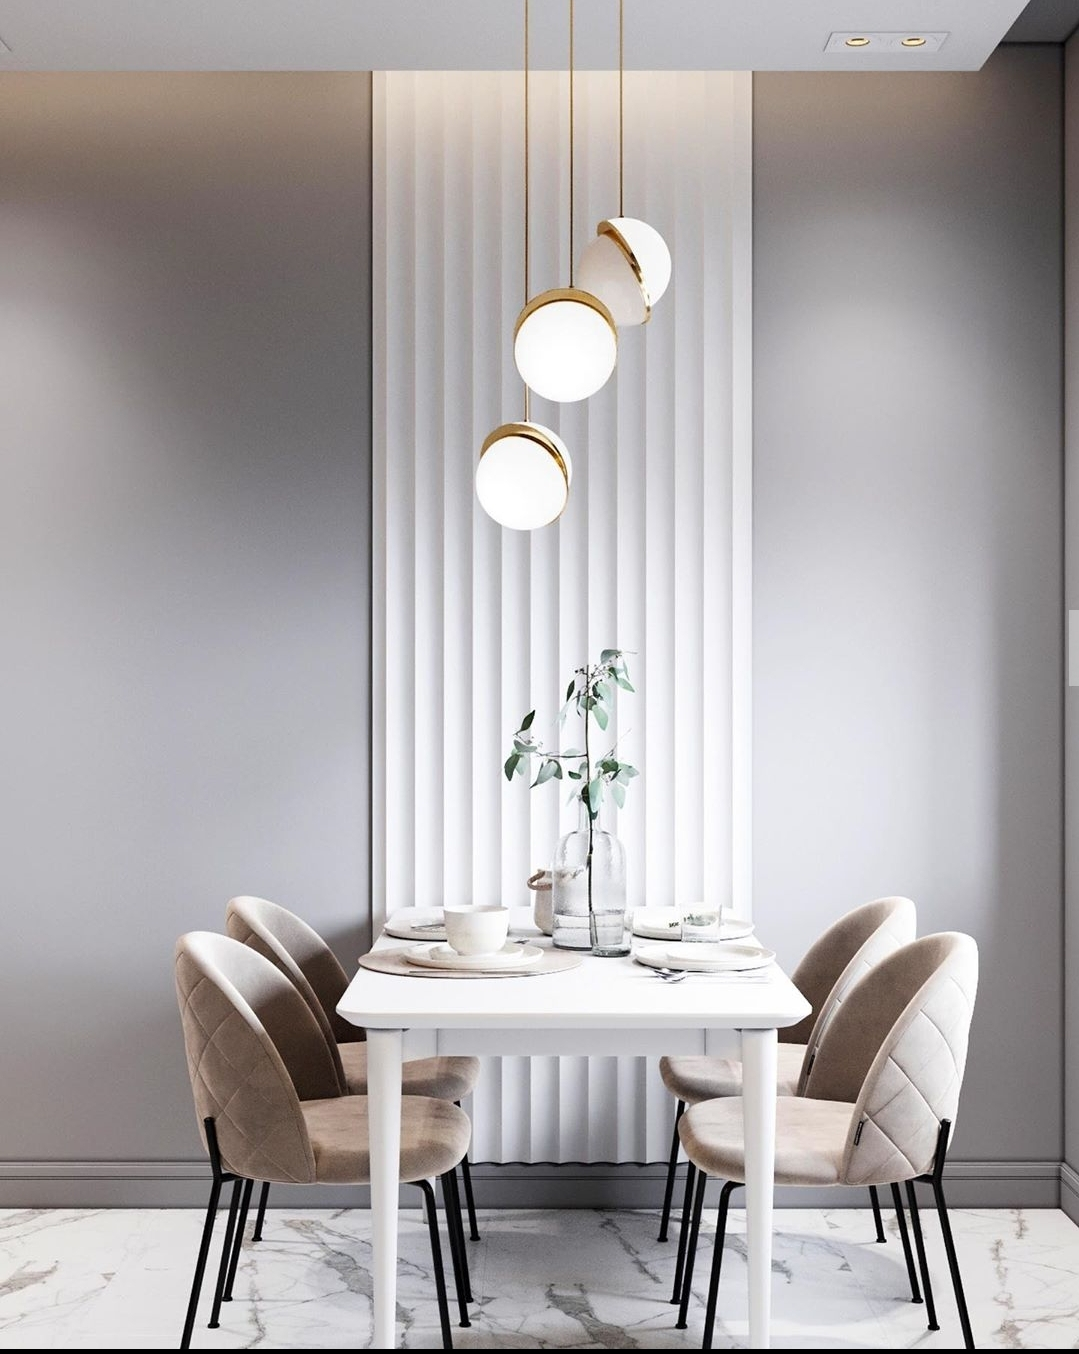 Amazing lighting in dining part of this room.